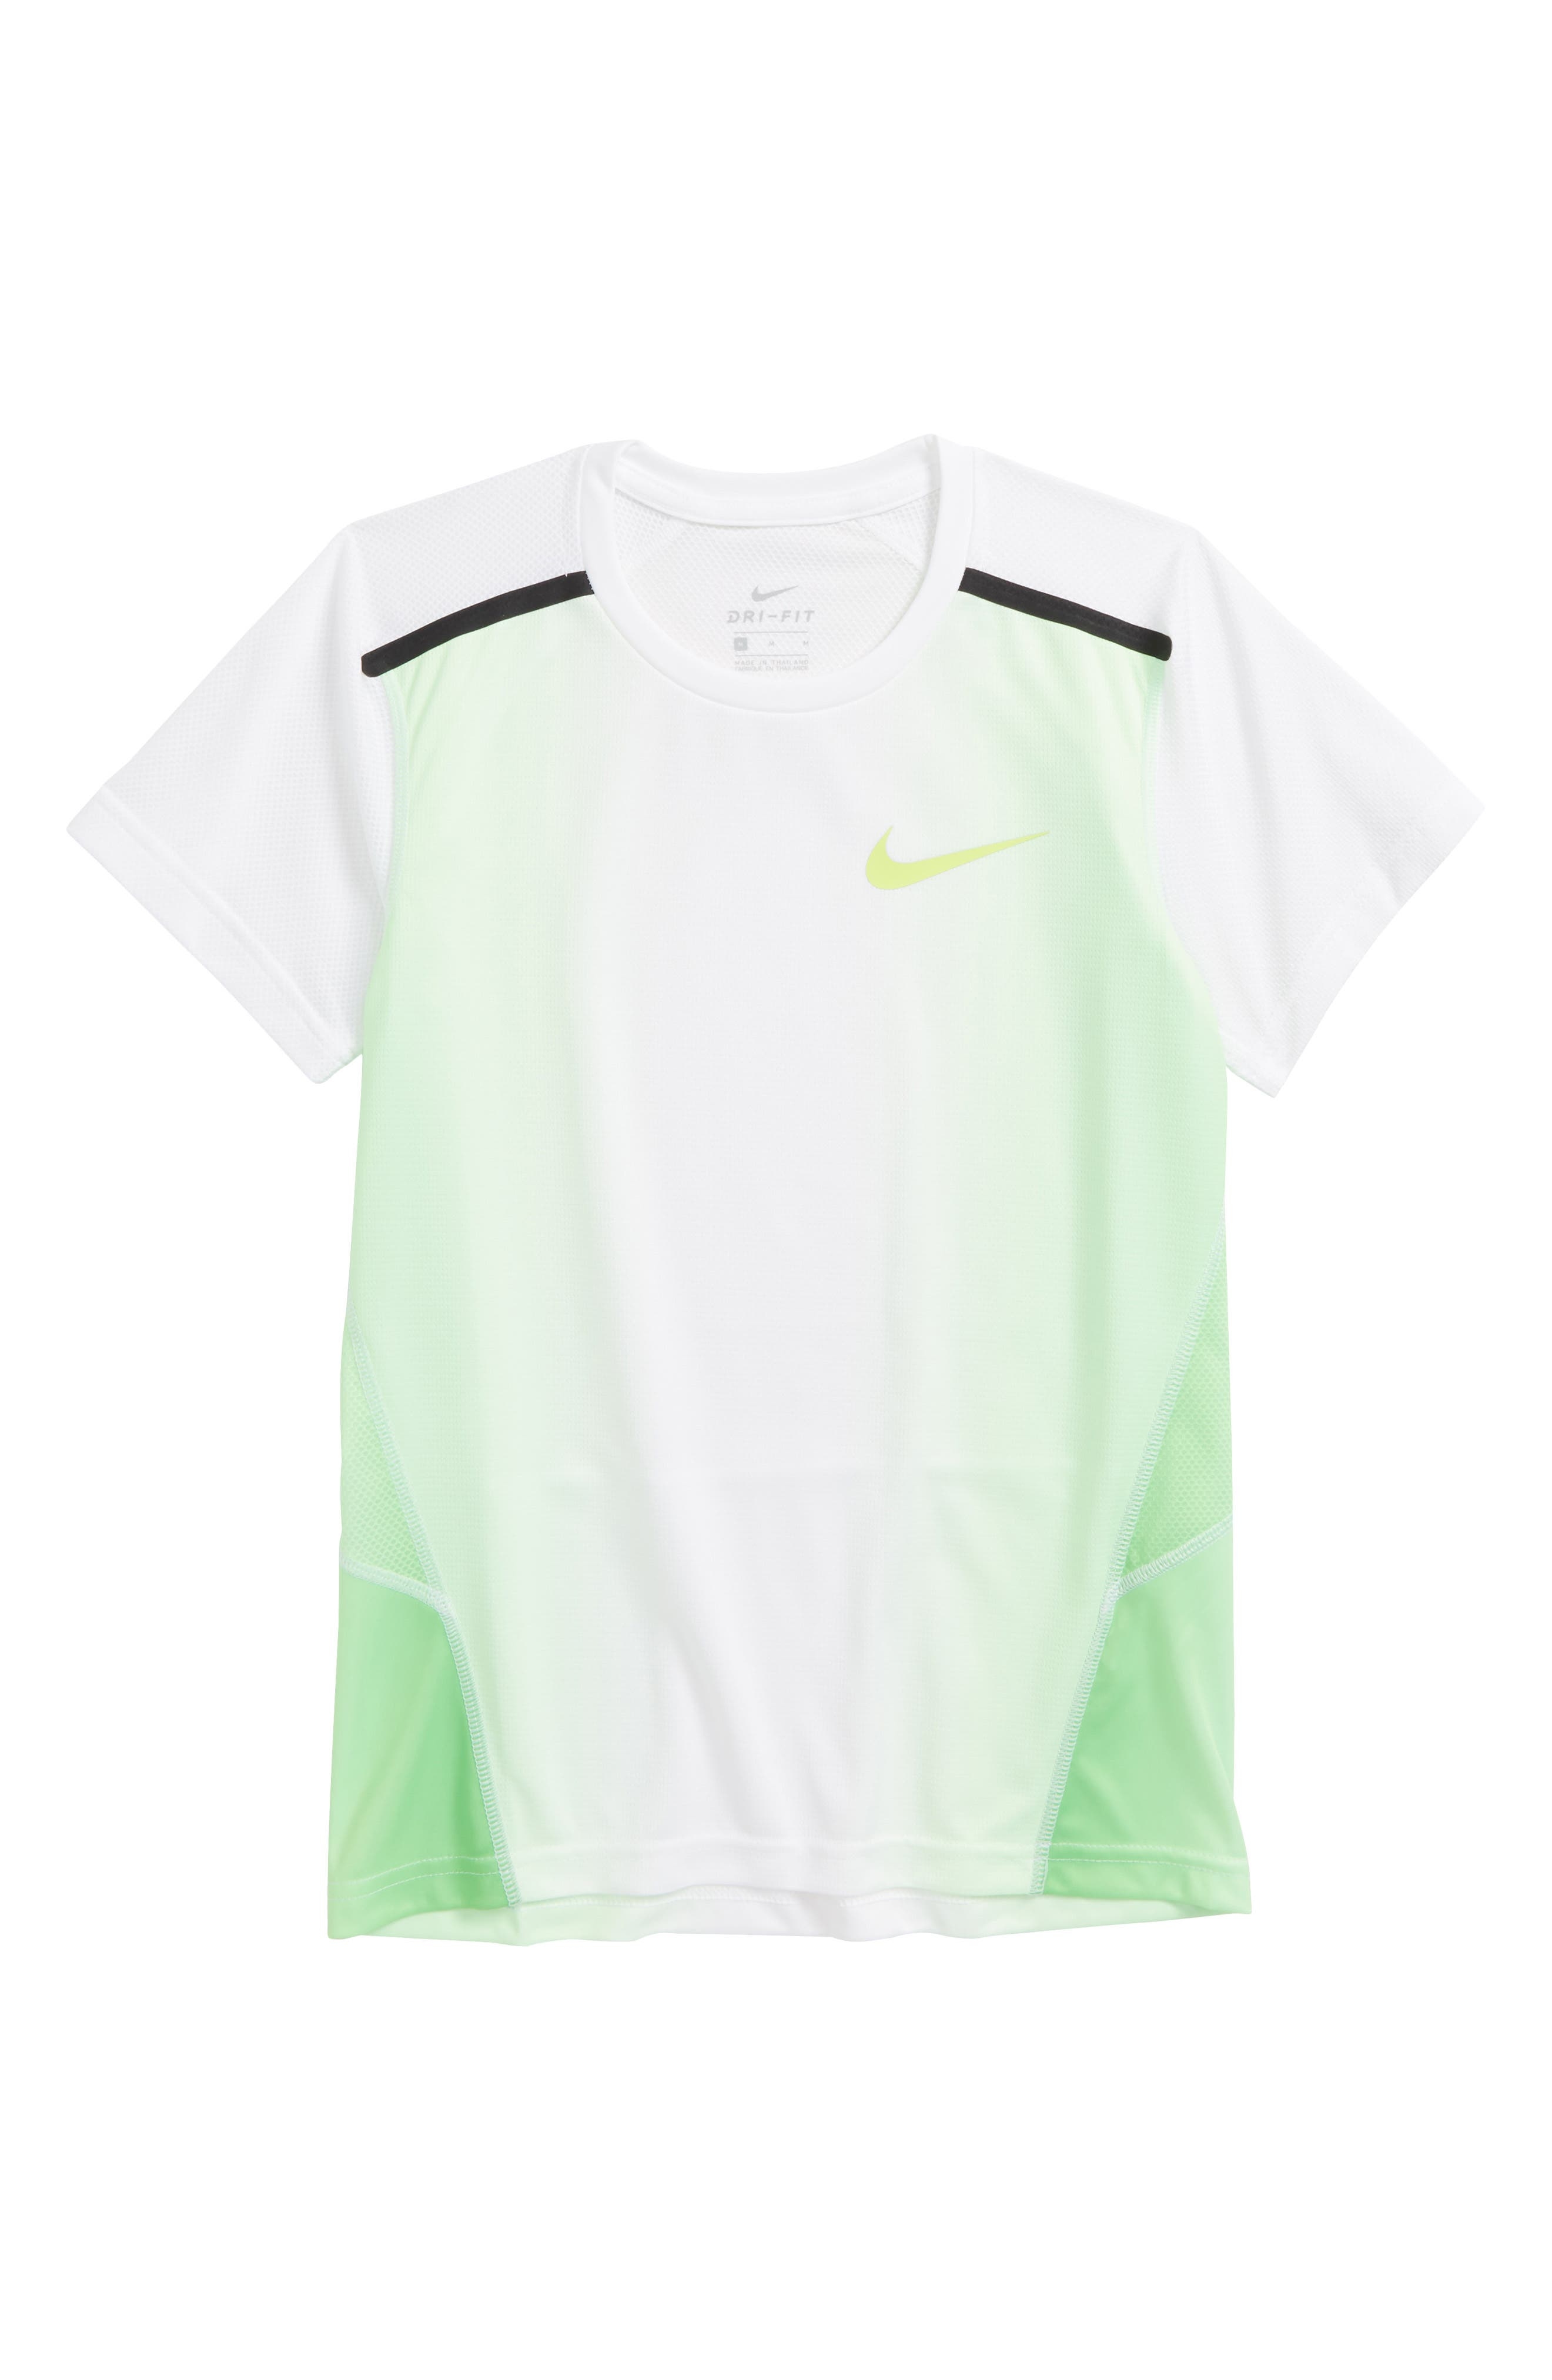 Breathe Dry Insta Air Shirt,                             Alternate thumbnail 2, color,                             398